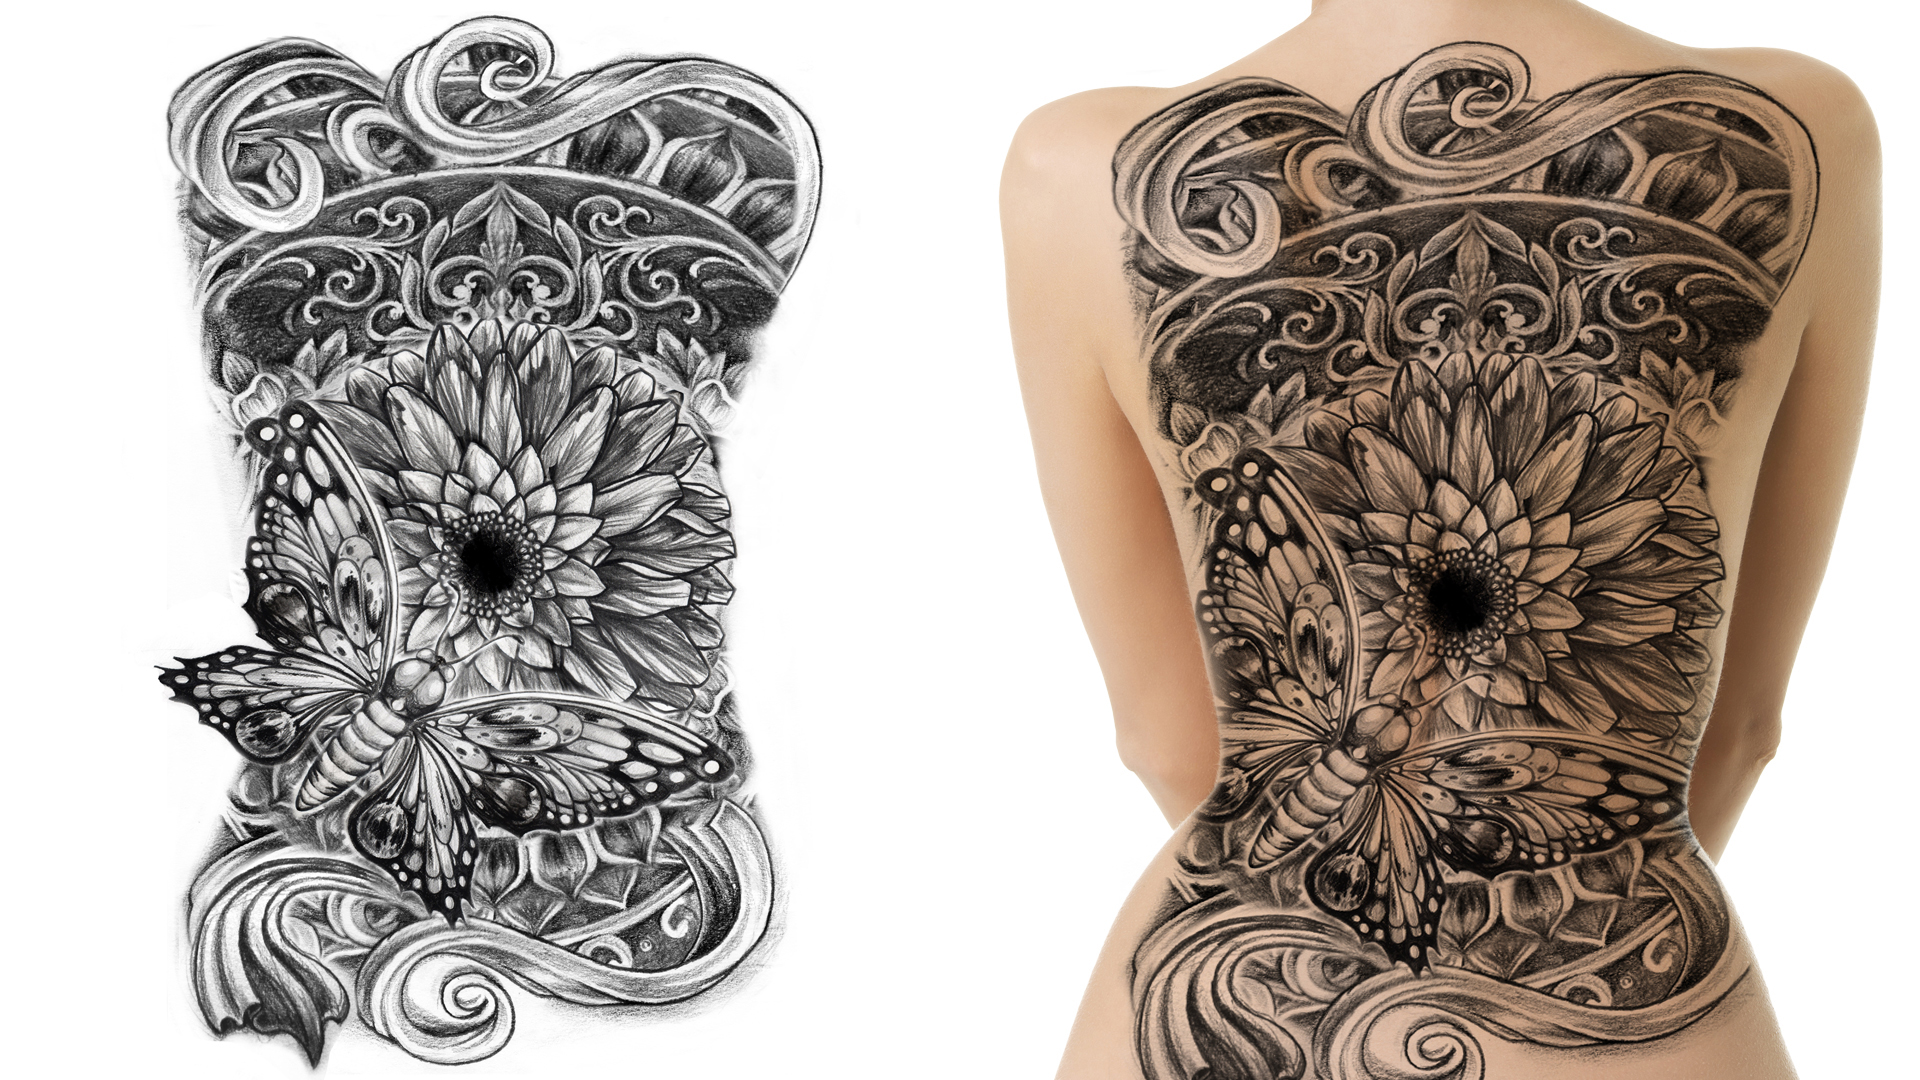 Tattoo design picture - Butterfly And Flower Full Back Tattoo Design